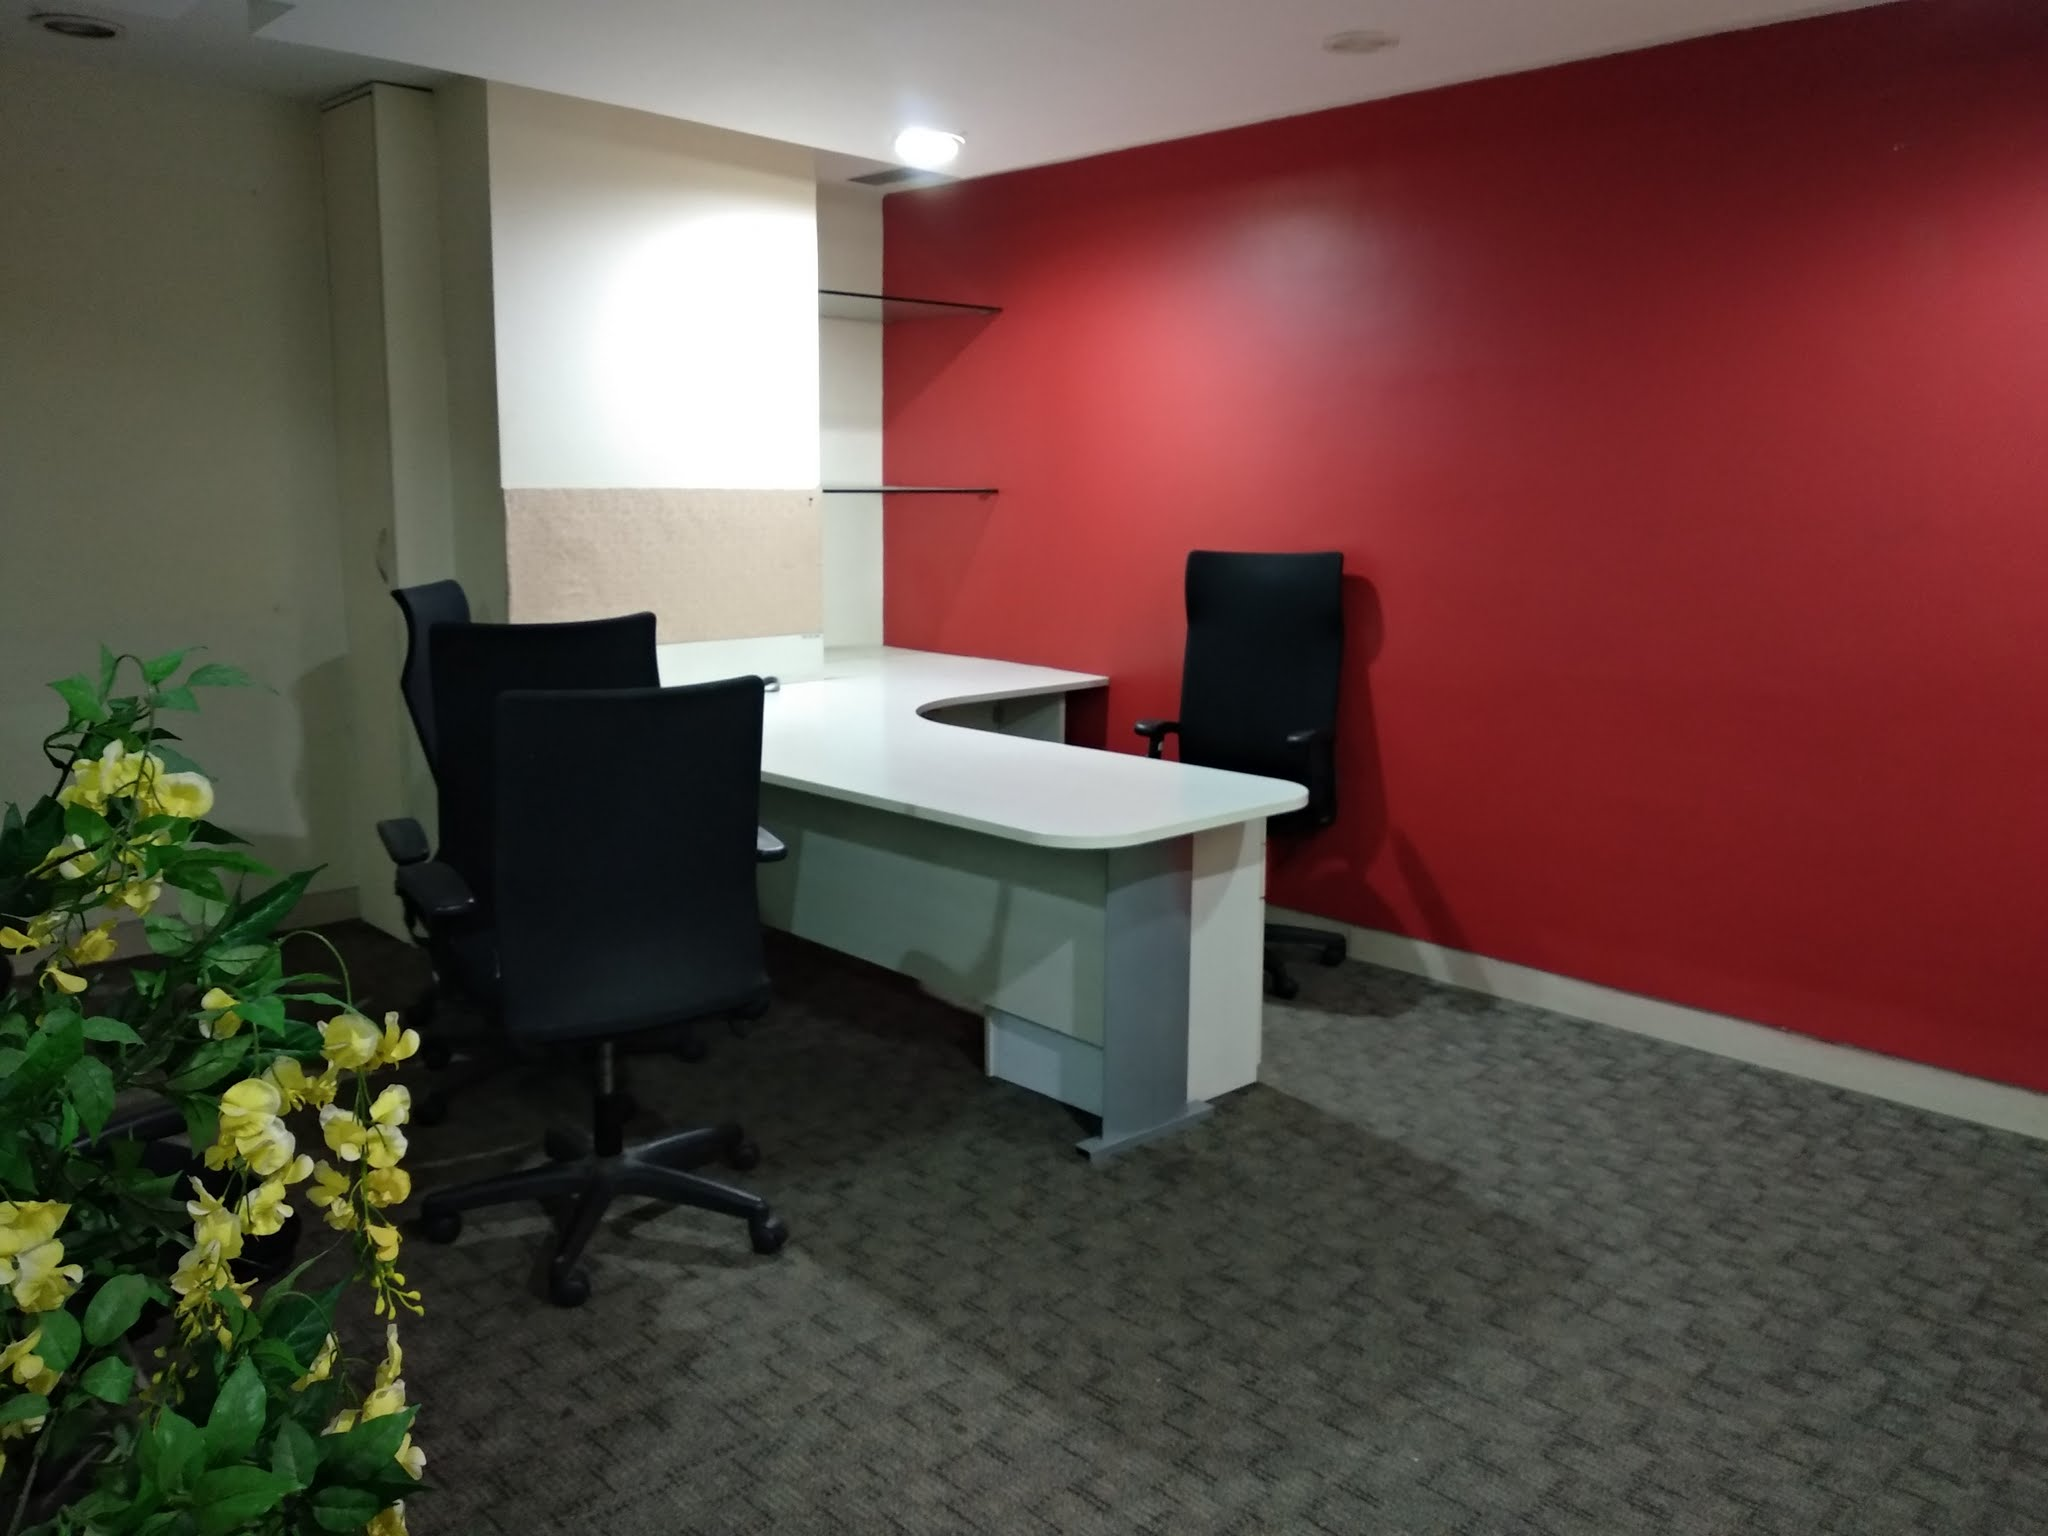 Commercial Office Space for Sale in Ghatkoper , Ghatkopar-West, Mumbai